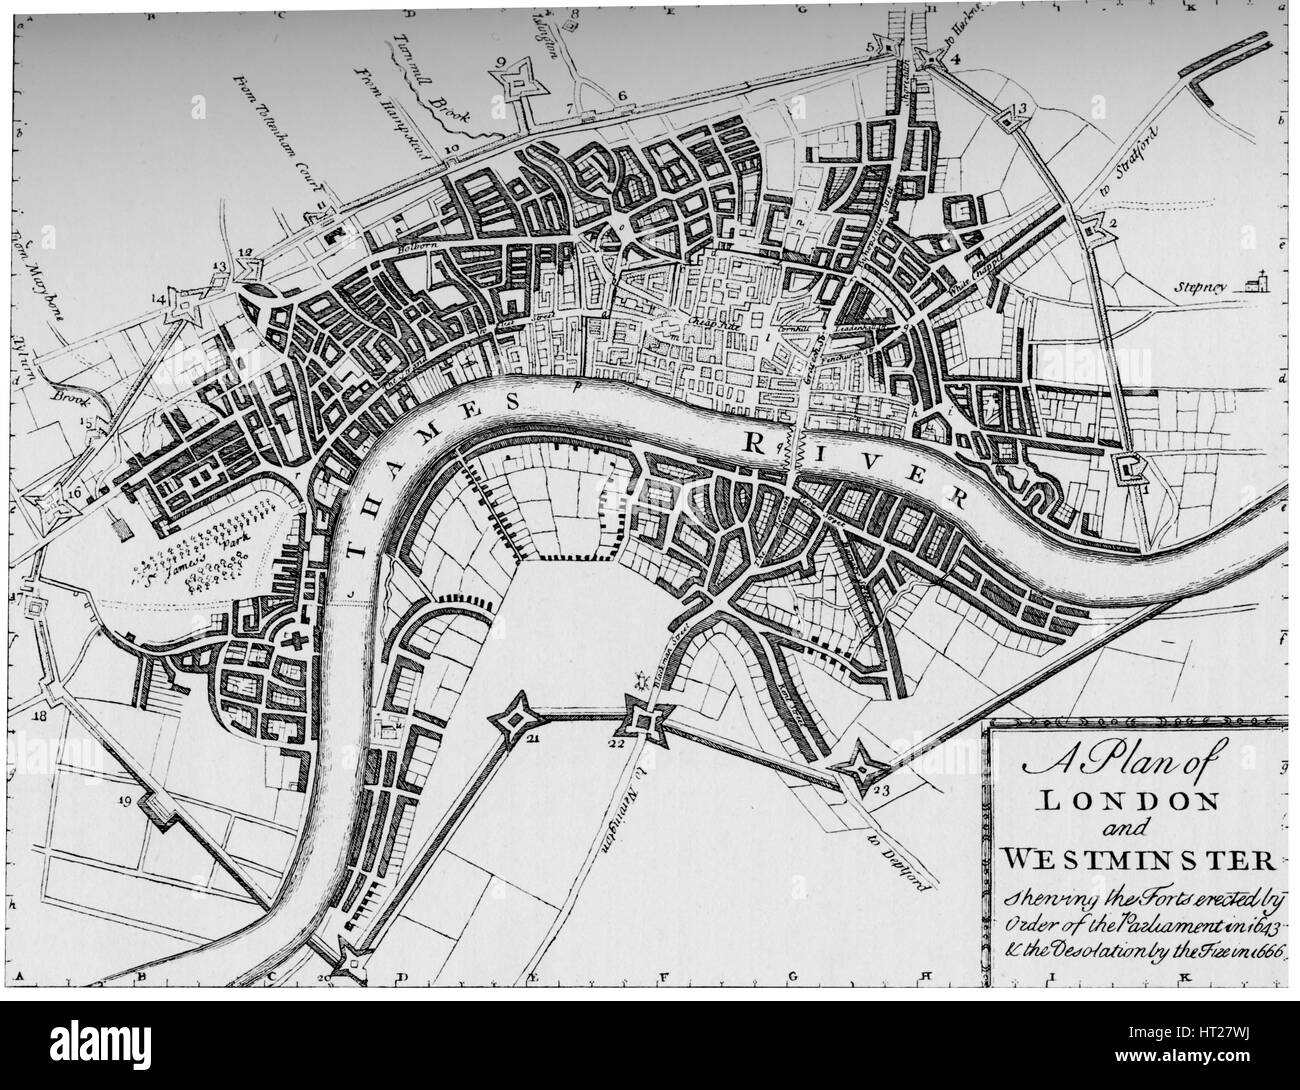 Plan of London and Westminster, 1749 (1903). Artist: Unknown. - Stock Image